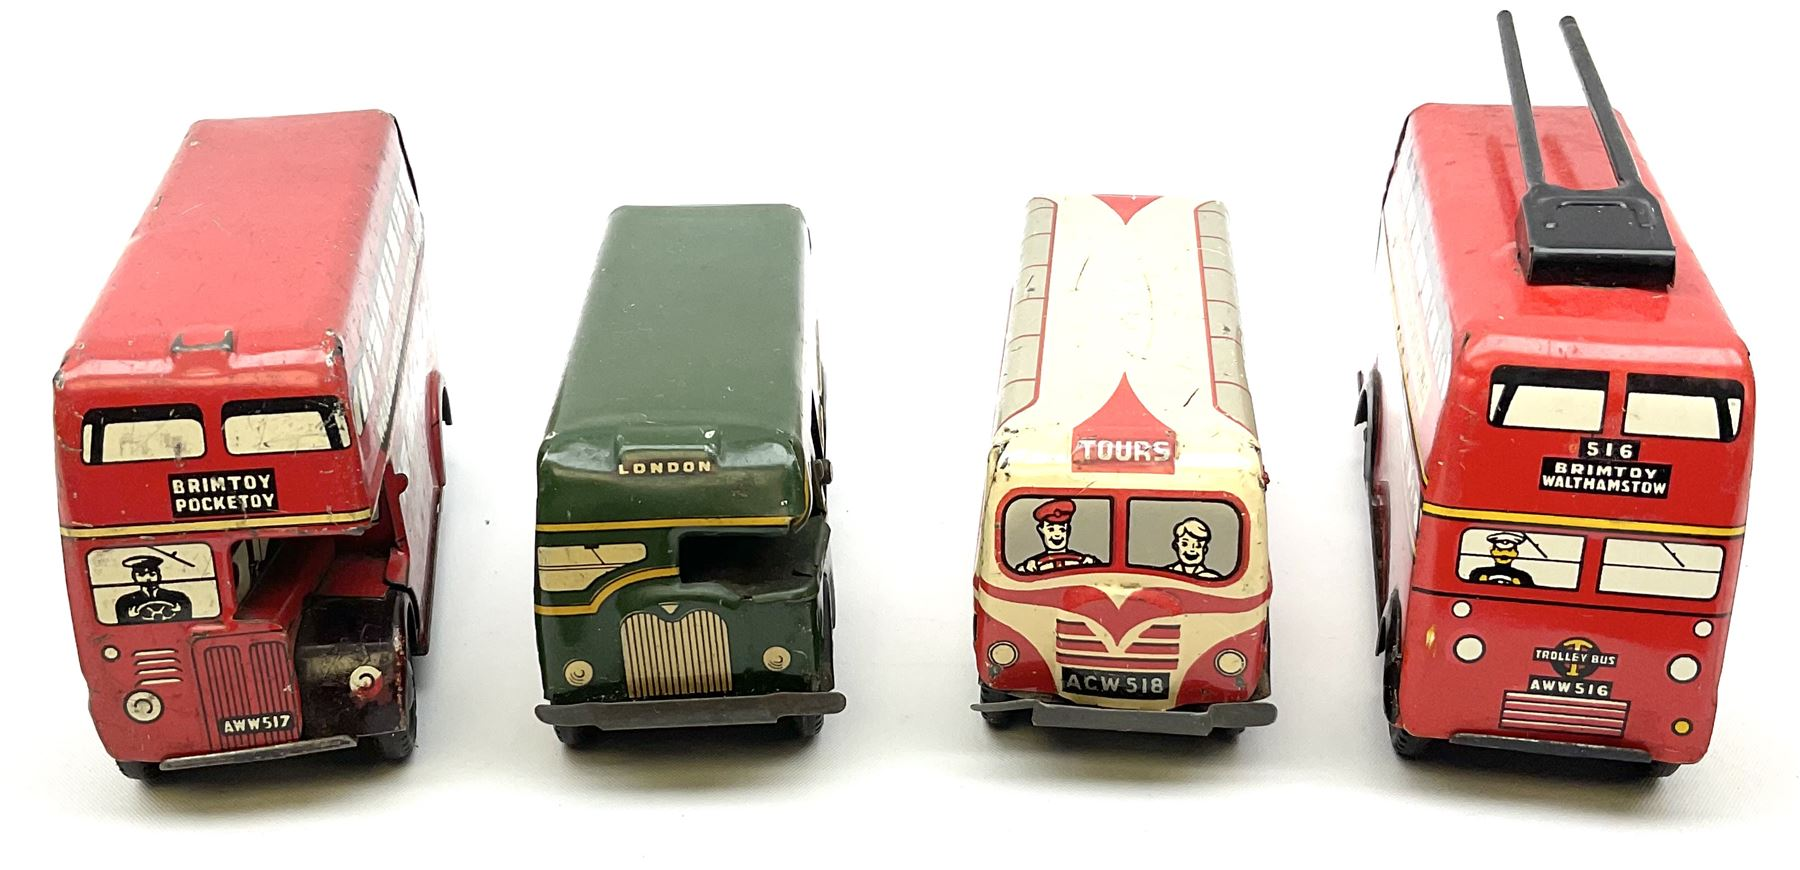 Wells Brimtoy/Pocketoy - eight tin-plate/clockwork or friction-drive vehicles comprising London Trol - Image 8 of 8